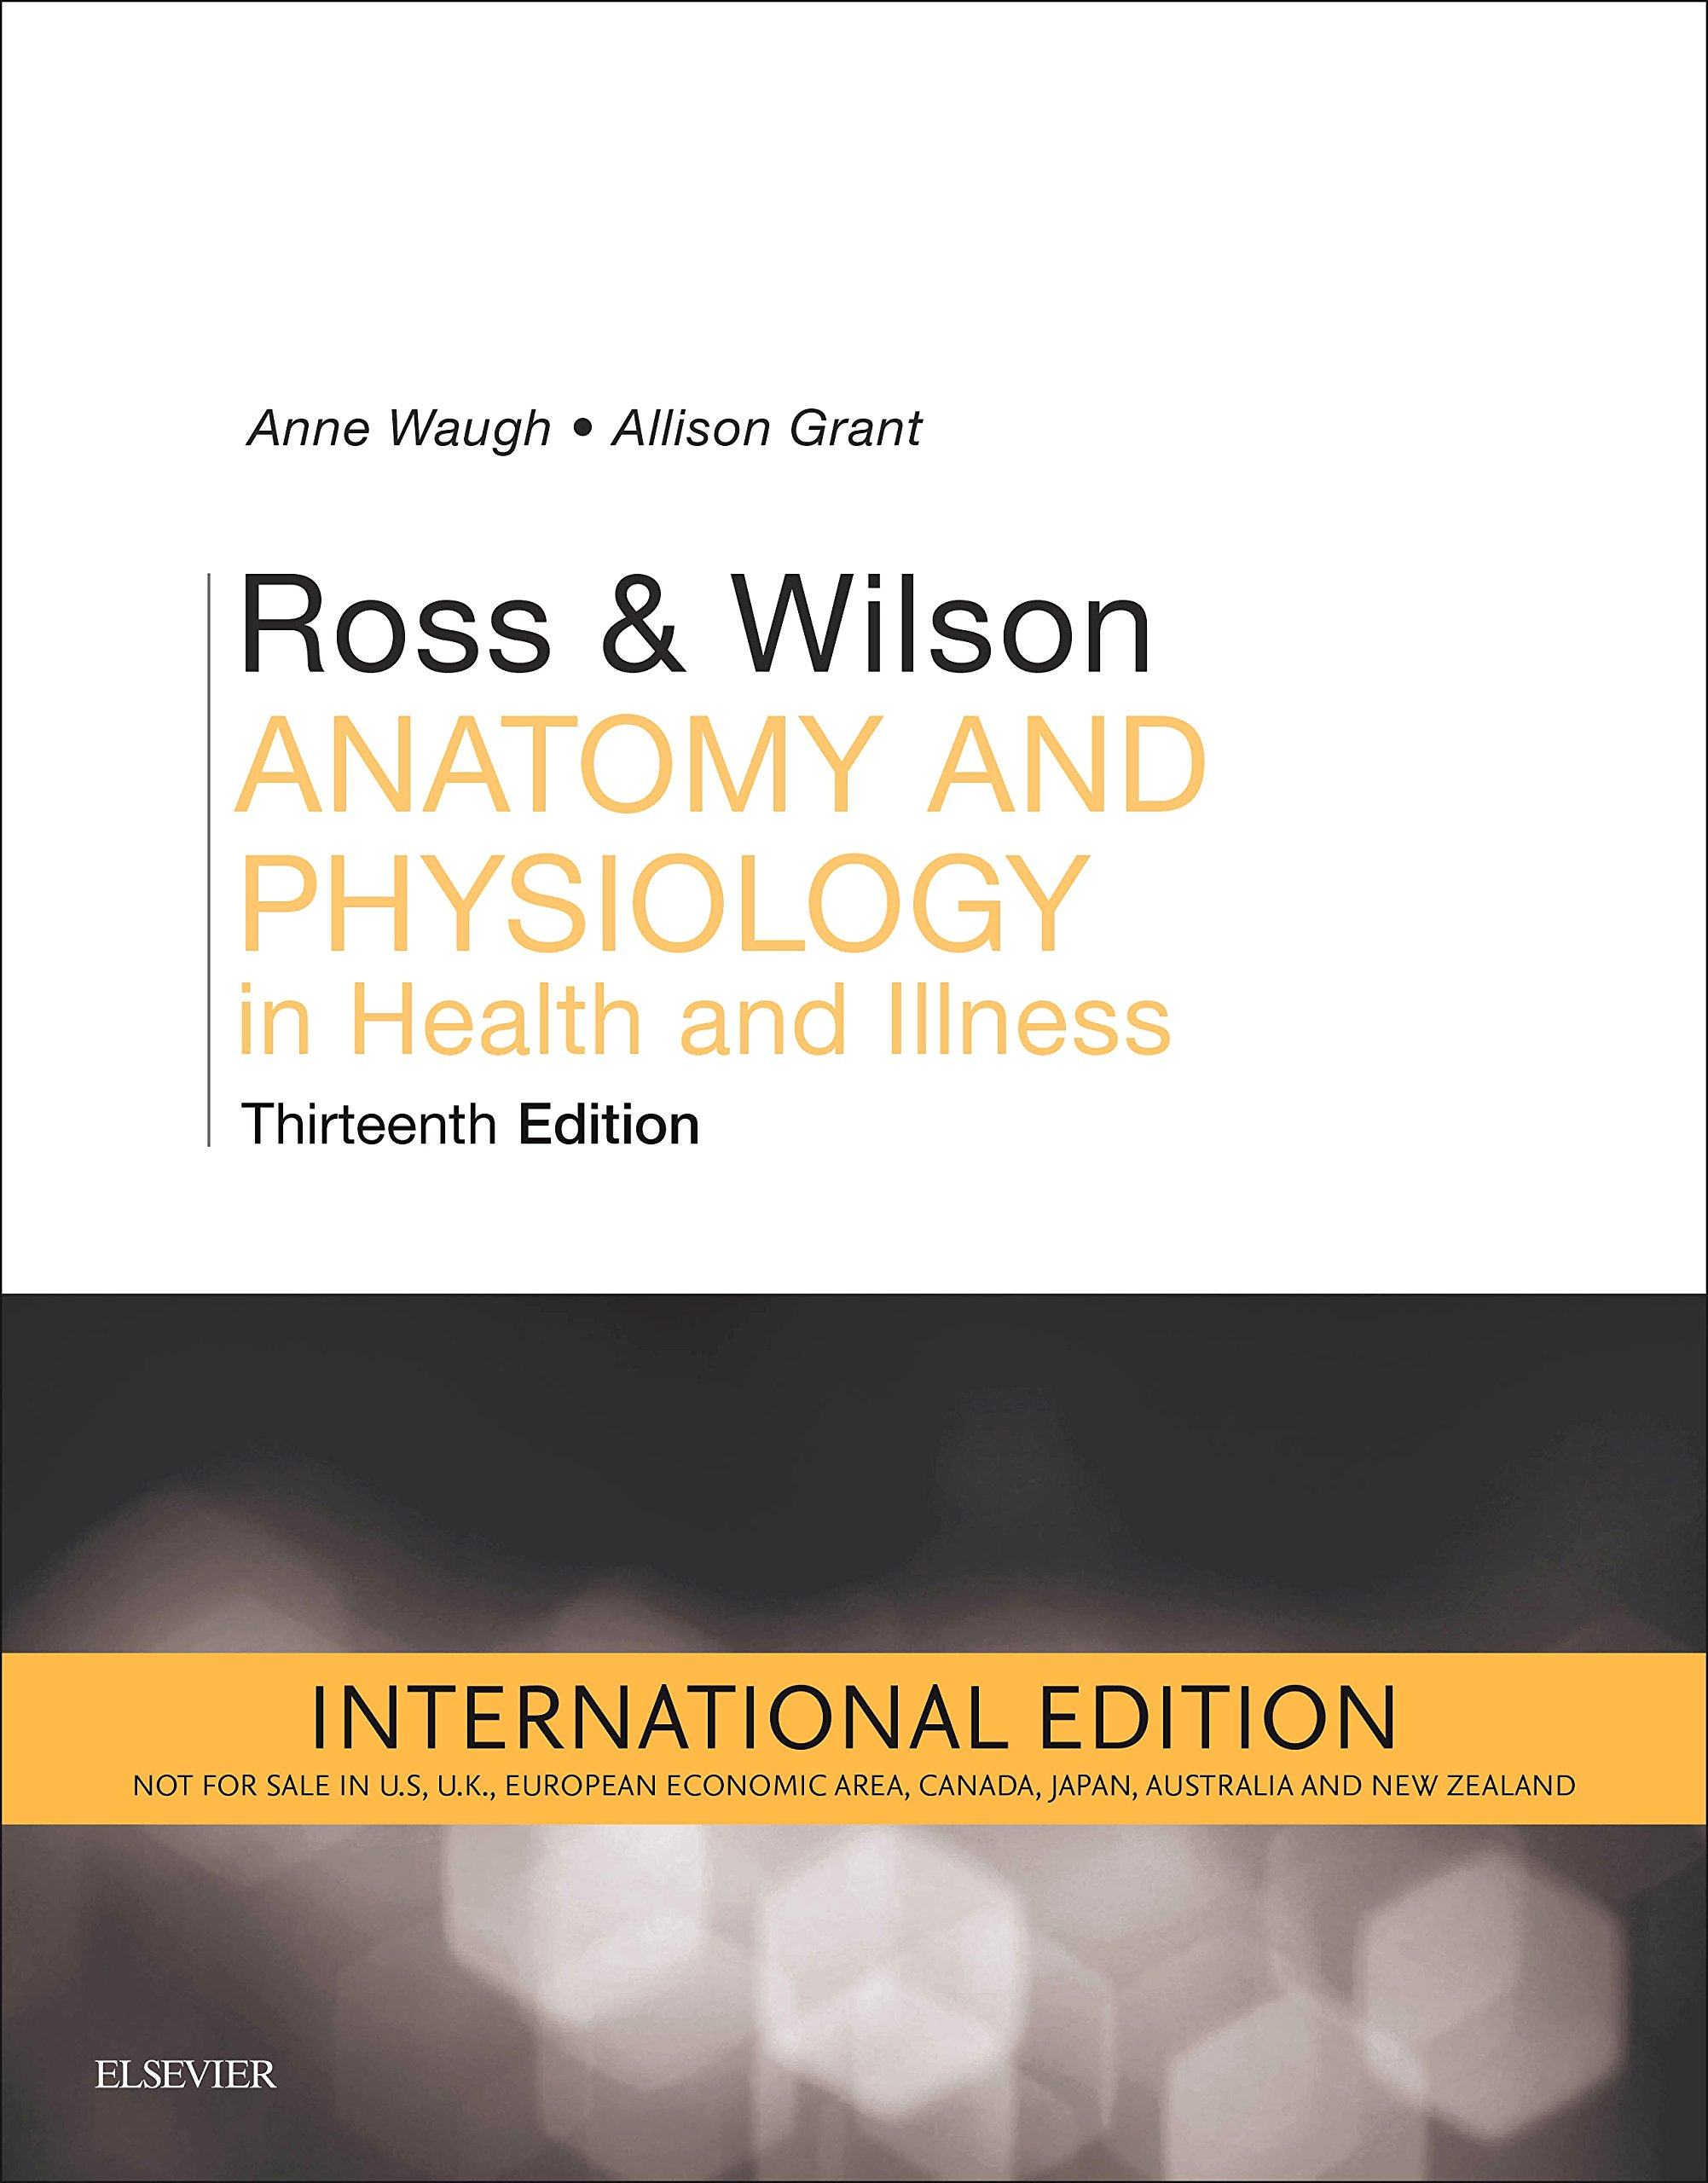 Ross and Wilson Anatomy and Physiology in Health and Illness (IE) -13E